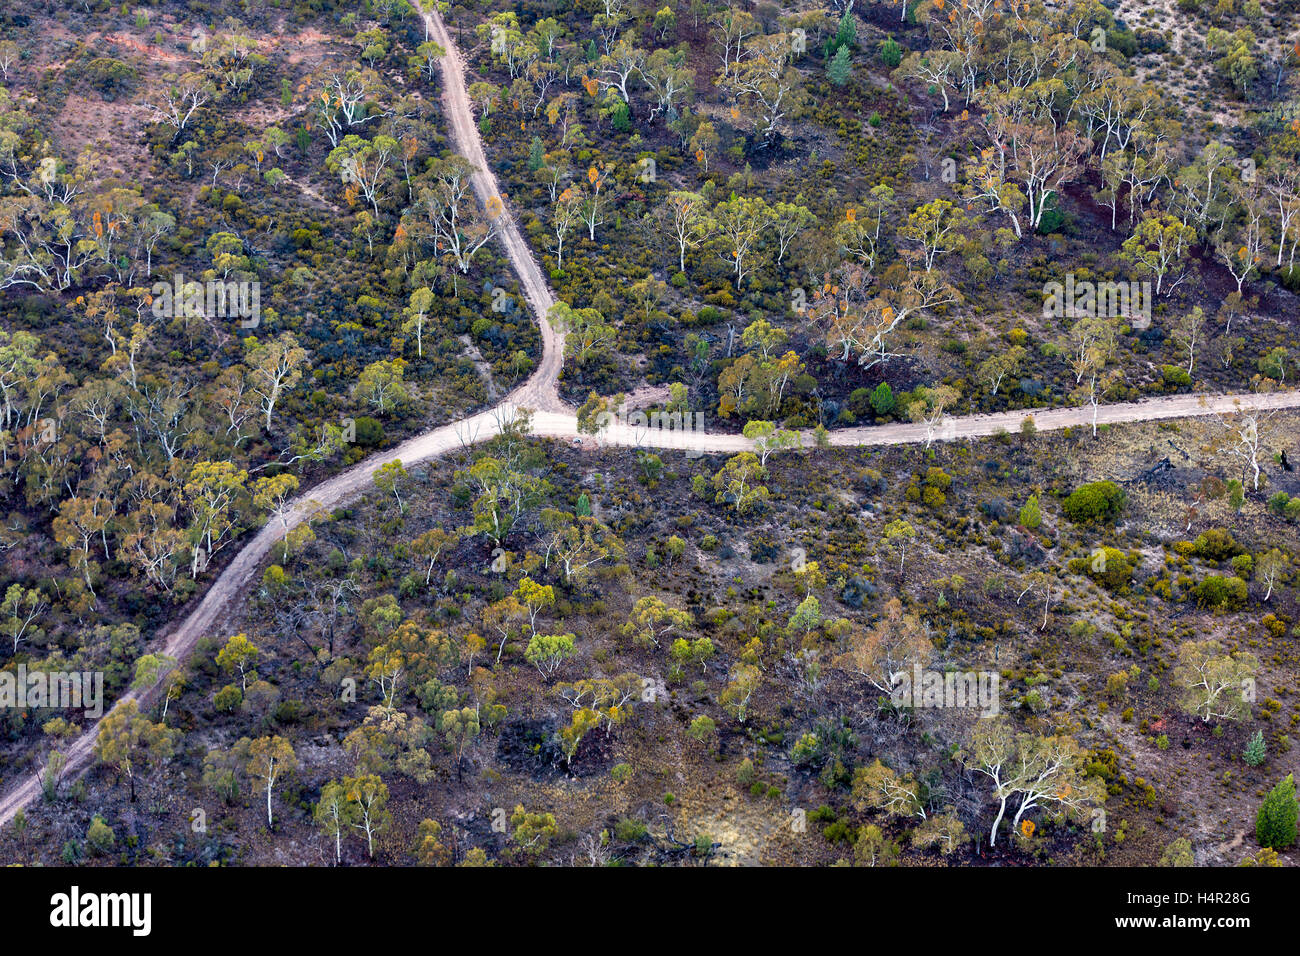 Low level aerial  of typical bushland in Western Victoria near Horsham. - Stock Image